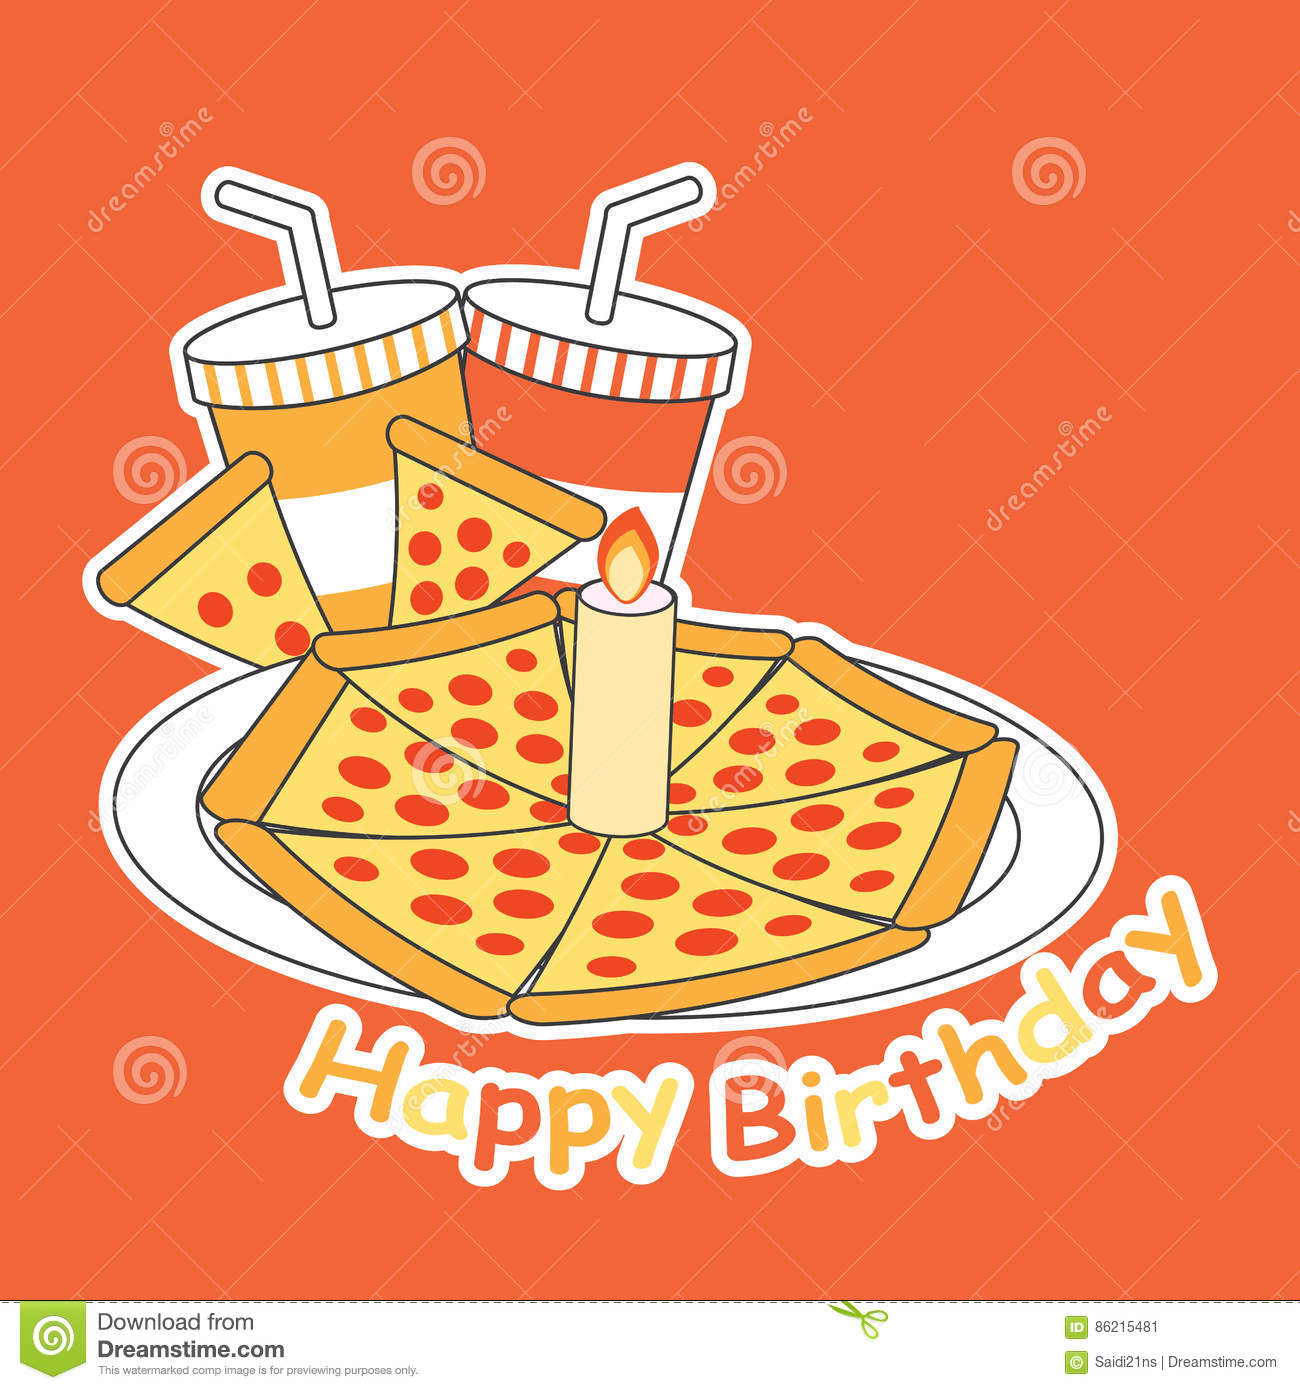 Birthday Card With Pizza On The Plate And Soft Drinks